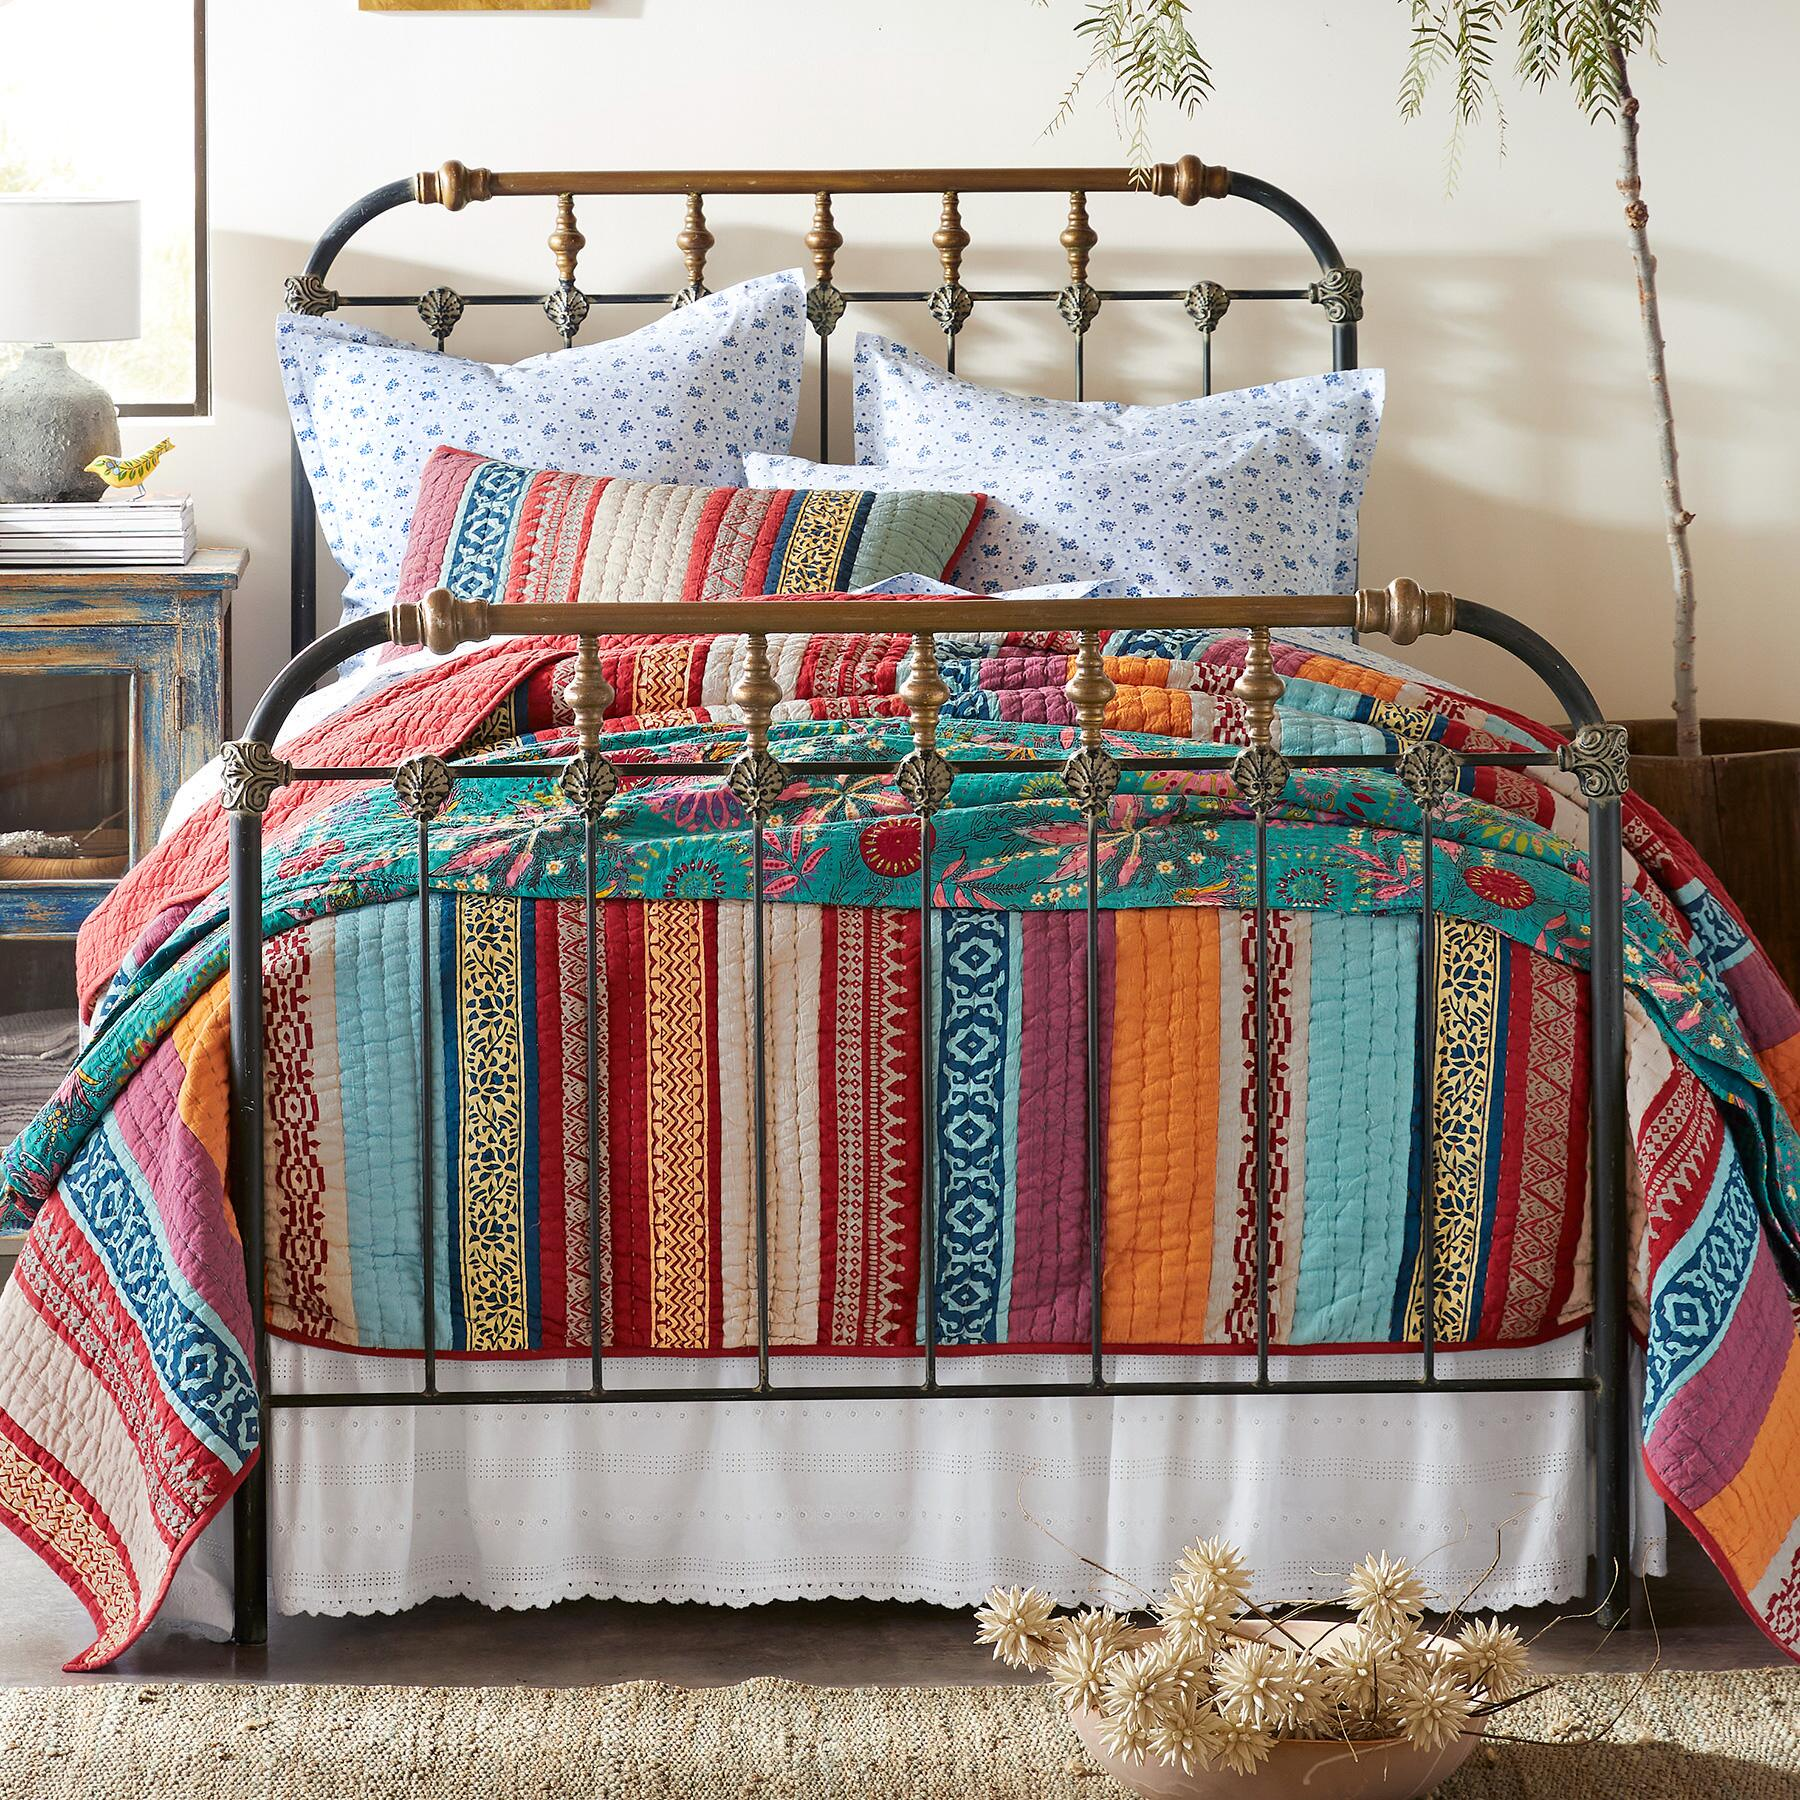 BOHO BED: View 1